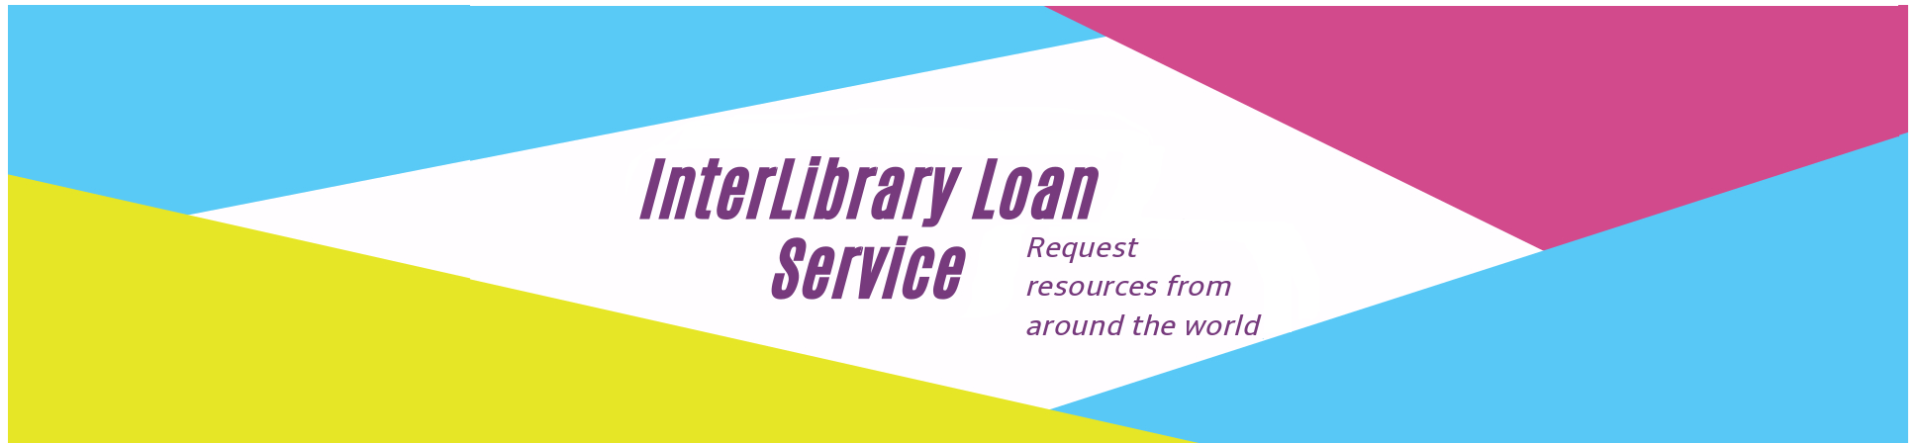 Interlibrary loan promotional banner